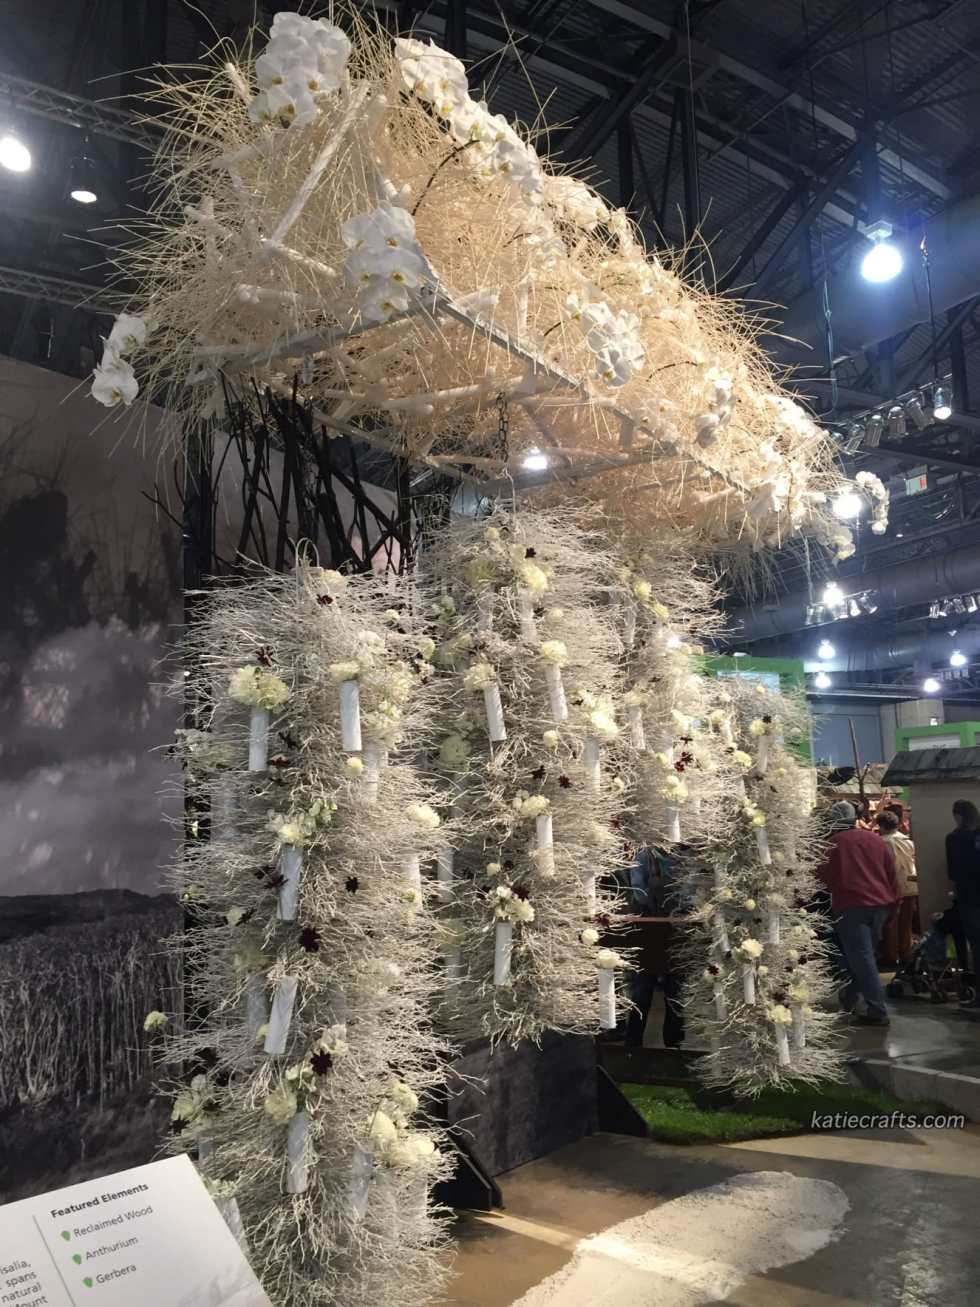 2016 Philly Flower Show Recap on Katie Crafts; http://www.katiecrafts.com